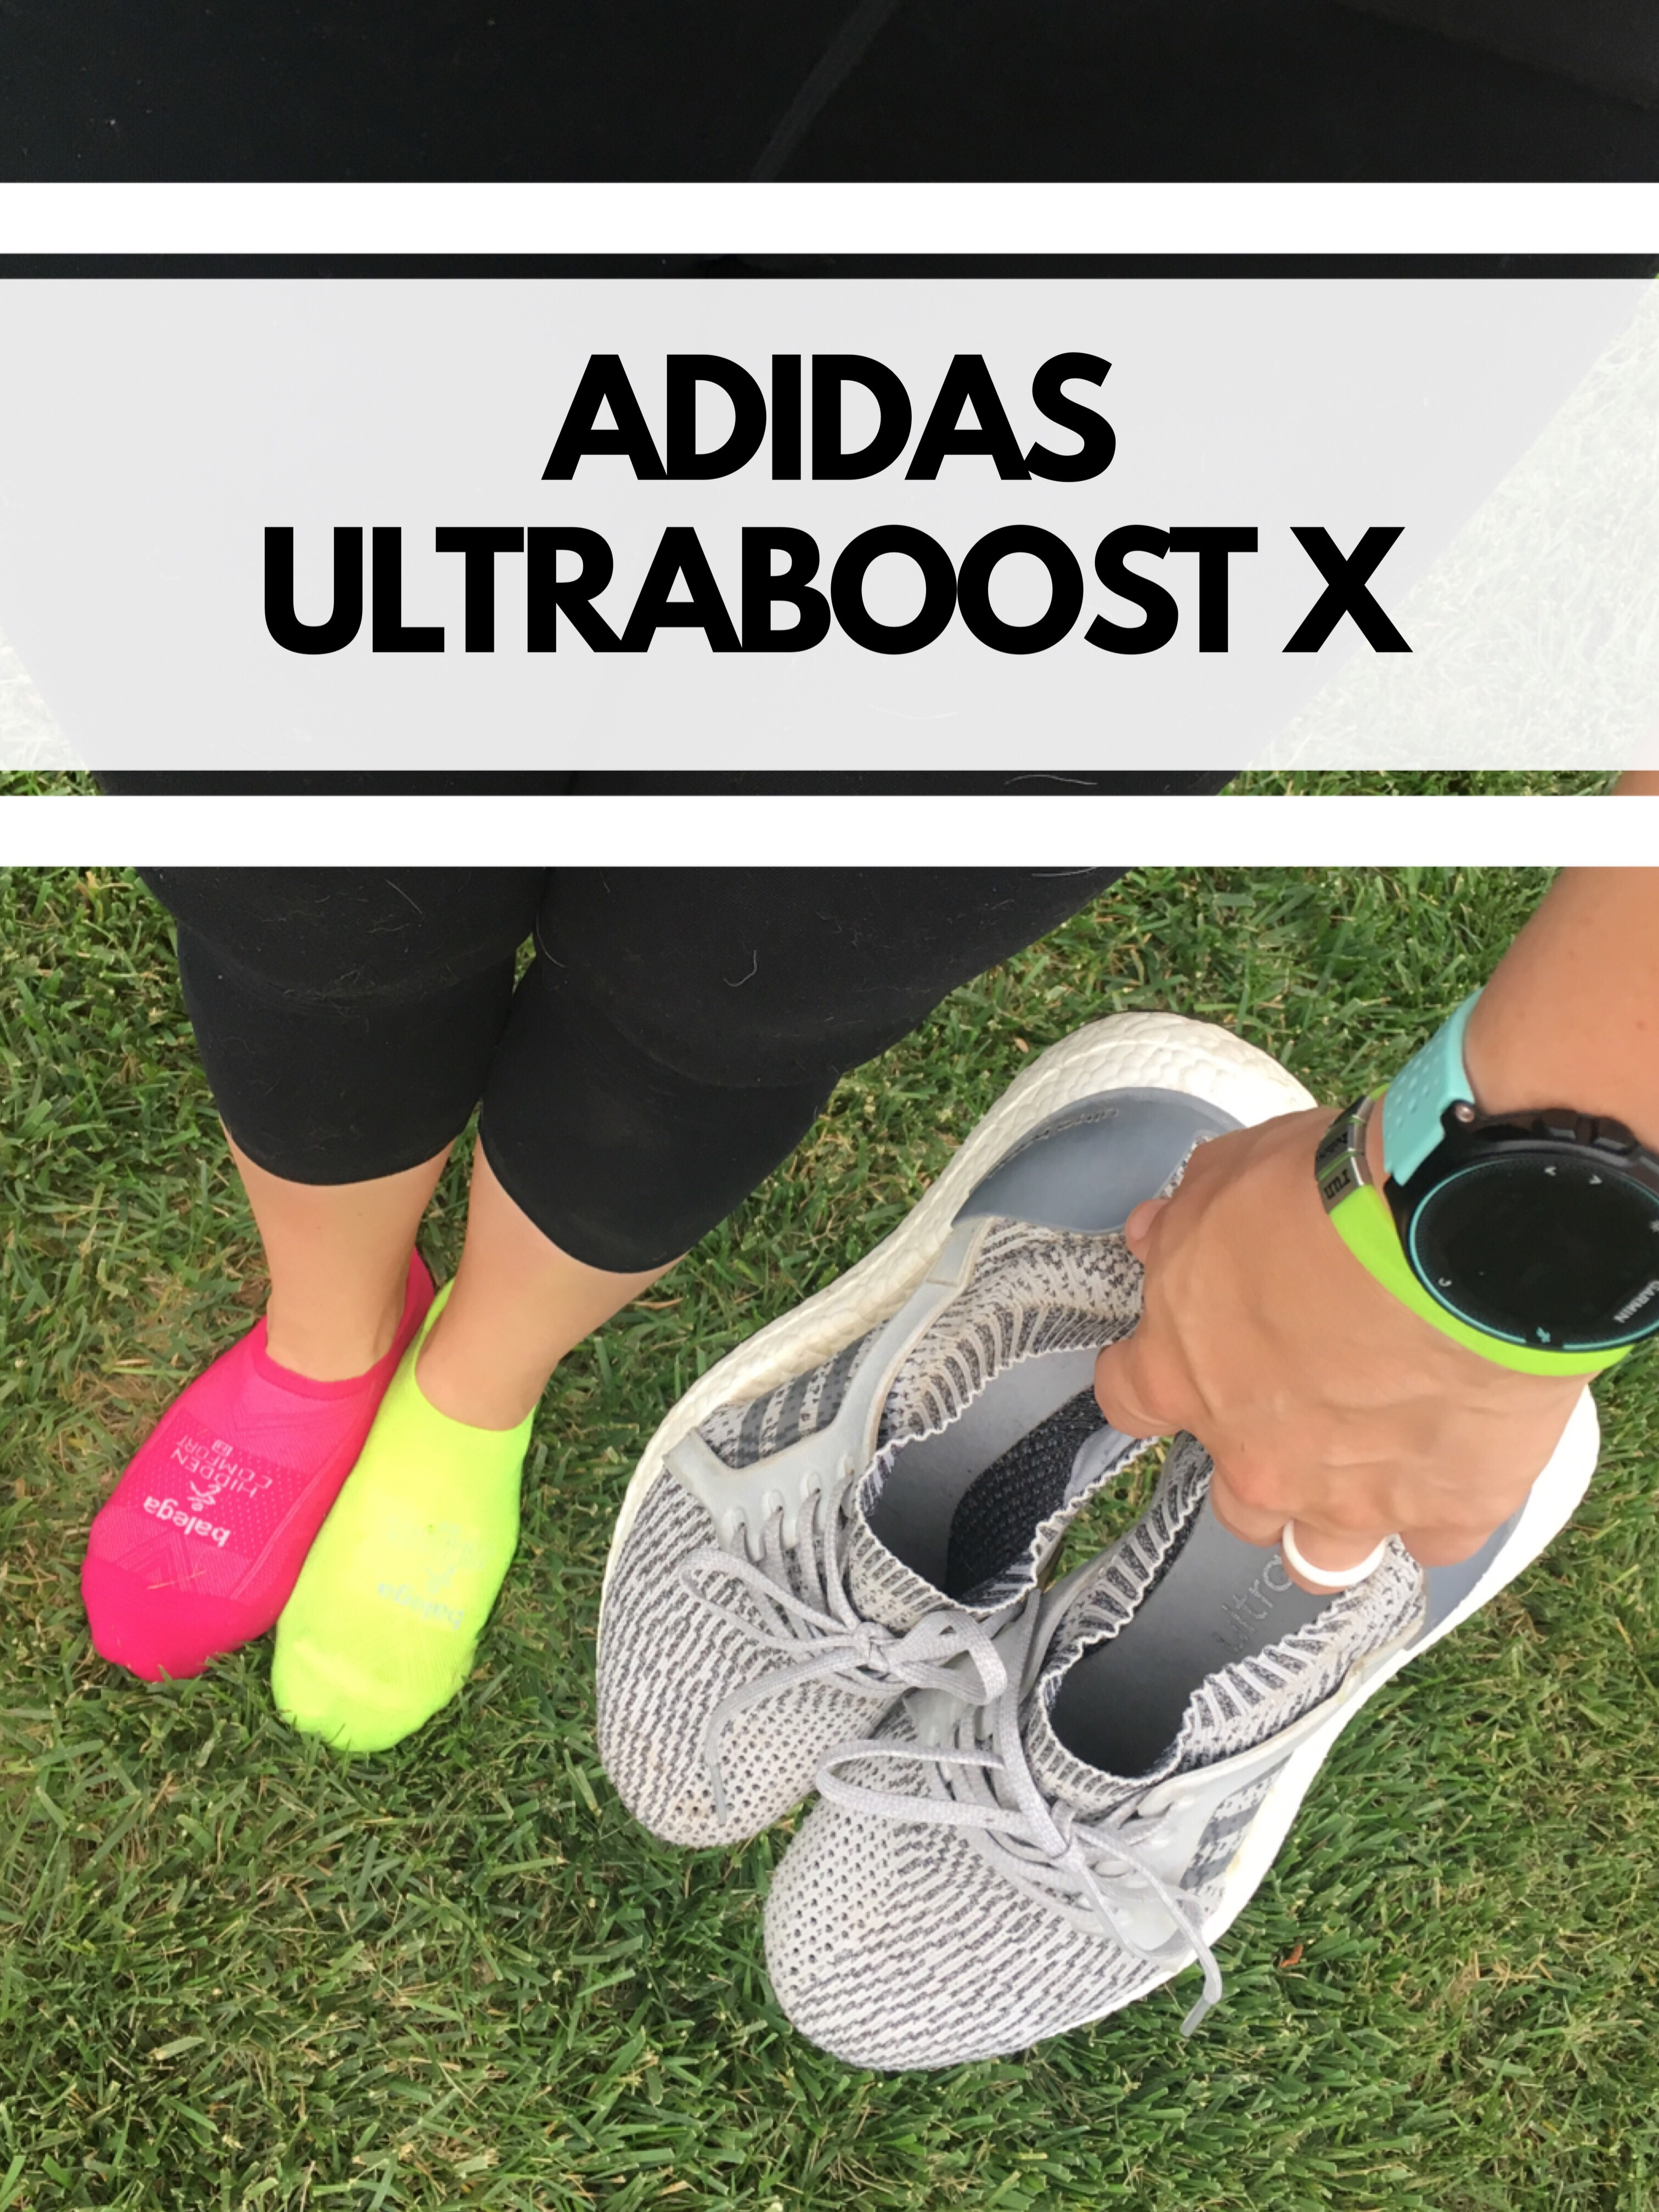 f62e00cf882 ... out and trying new shoes and new shoe brands. When I got the  opportunity to try the new Adidas UltraBoost X as a BibRave Pro